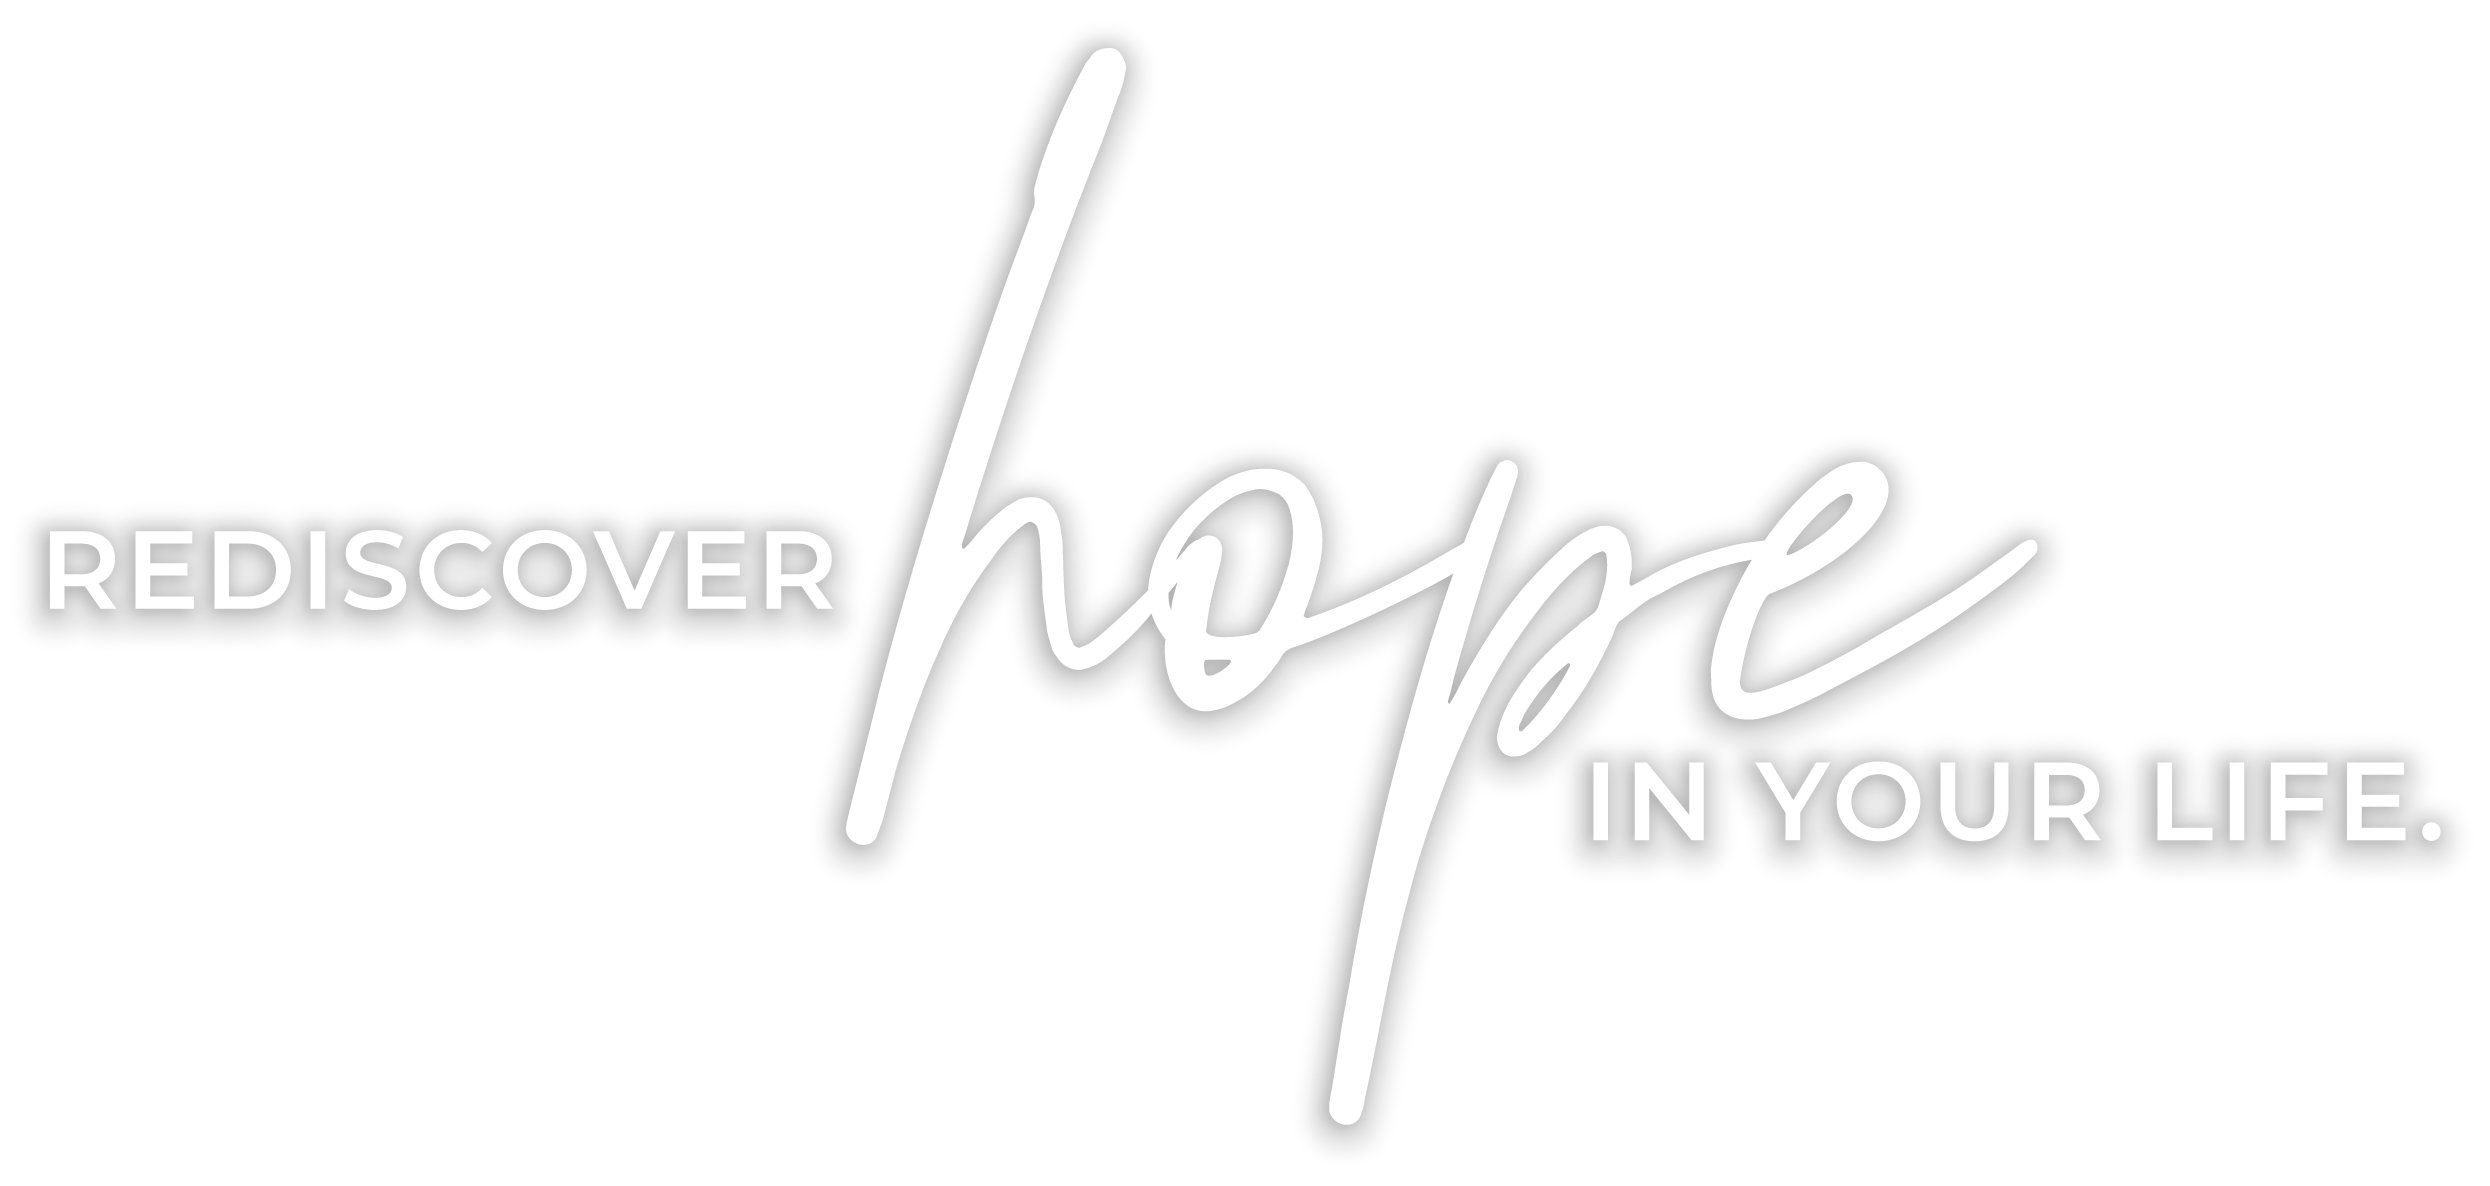 rediscover hope in your life